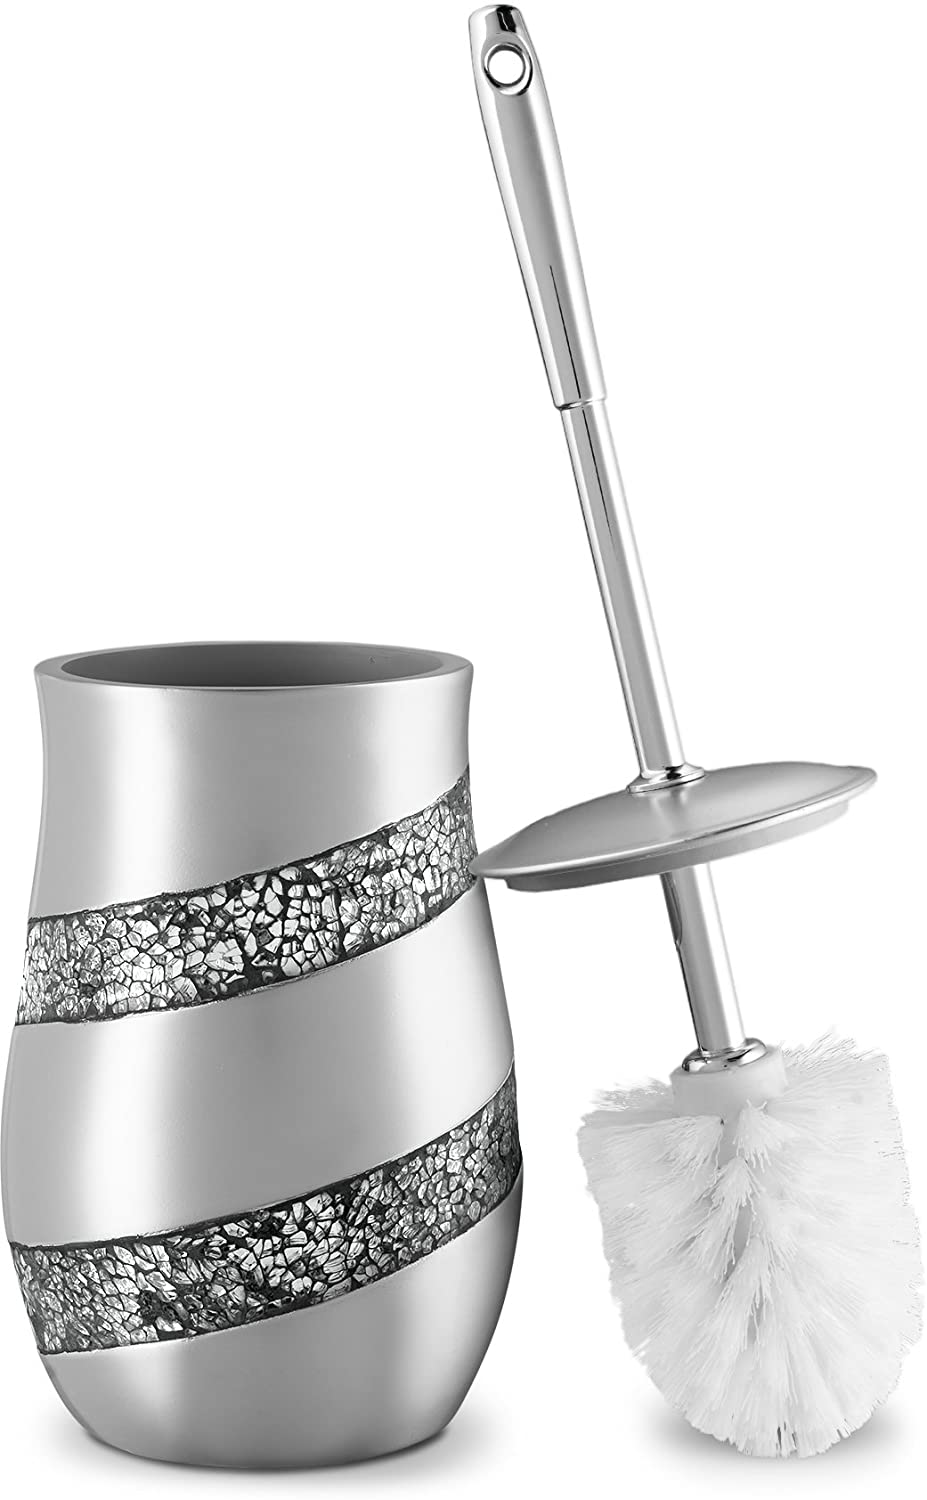 "Dwellza Silver Mosaic Toilet Bowl Brush with Holder (4.5"" x 4.5"" x 7.7)"" - Rust Resistant Resin- Decorative bowl Scrubber- Space Saving Design- Contemporary Scrubbing Cleaner (Silver Gray) SMP-44374"